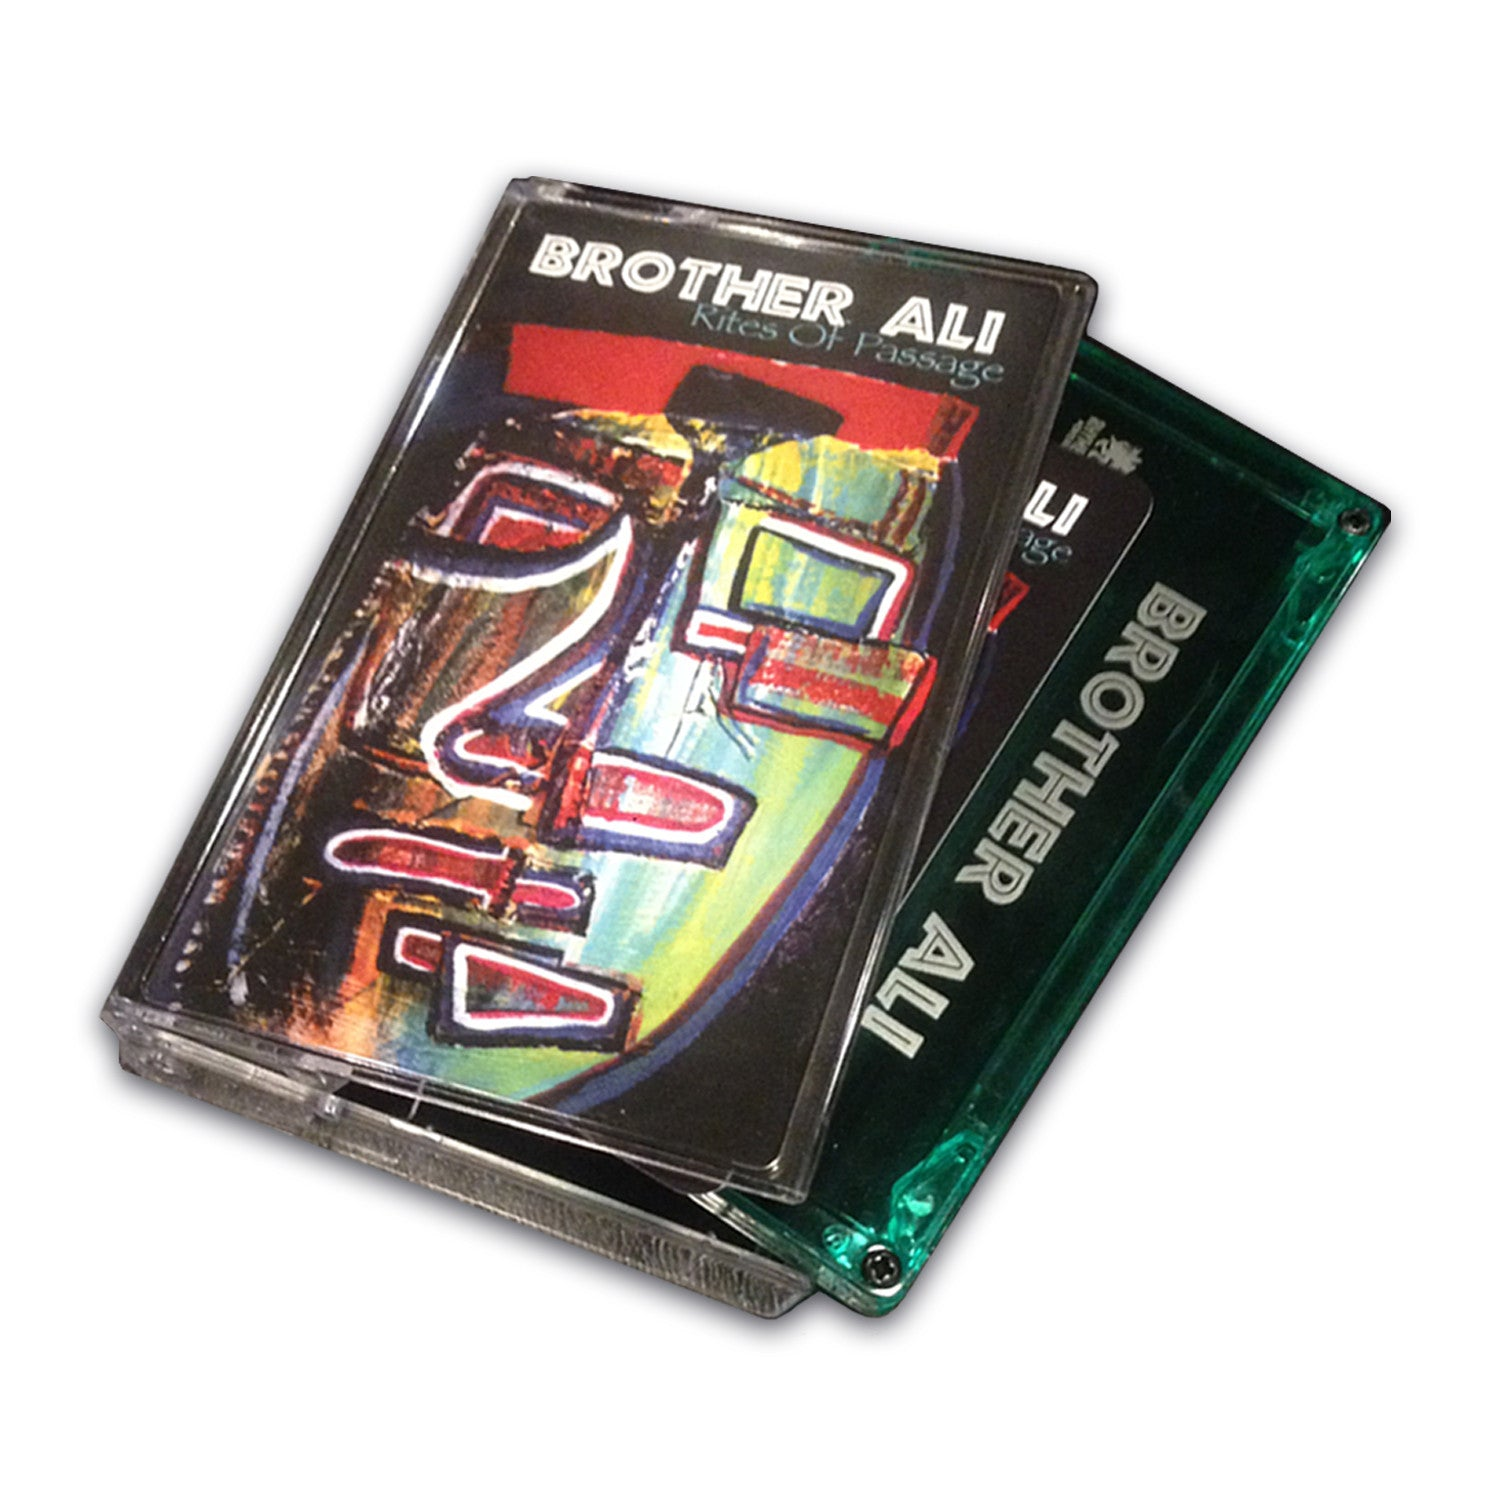 "Brother Ali ""Rites of Passage"" Cassette"